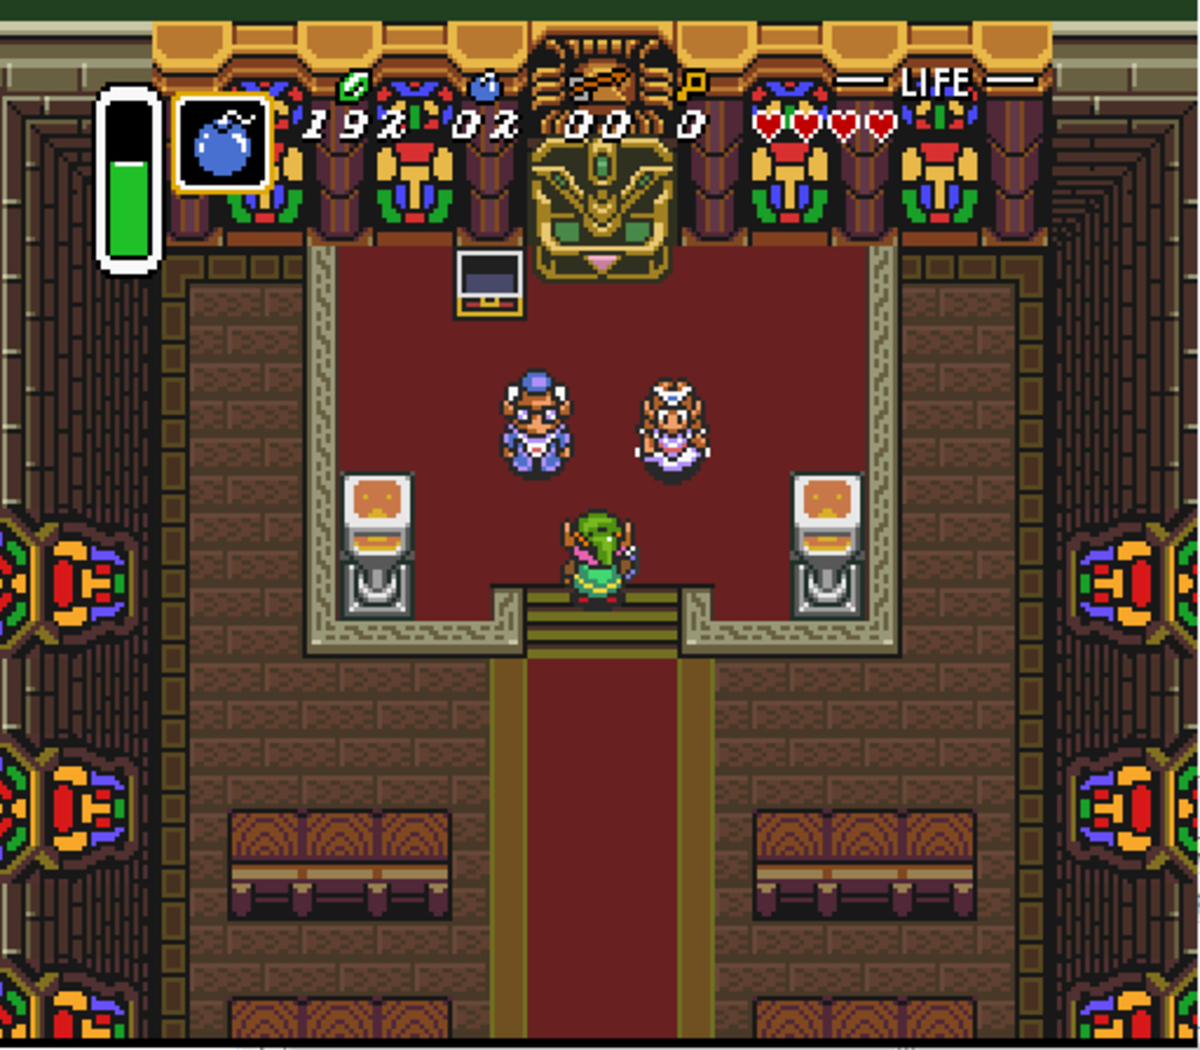 Sanctuary from A Link to the Past looks very much like a Christian church.